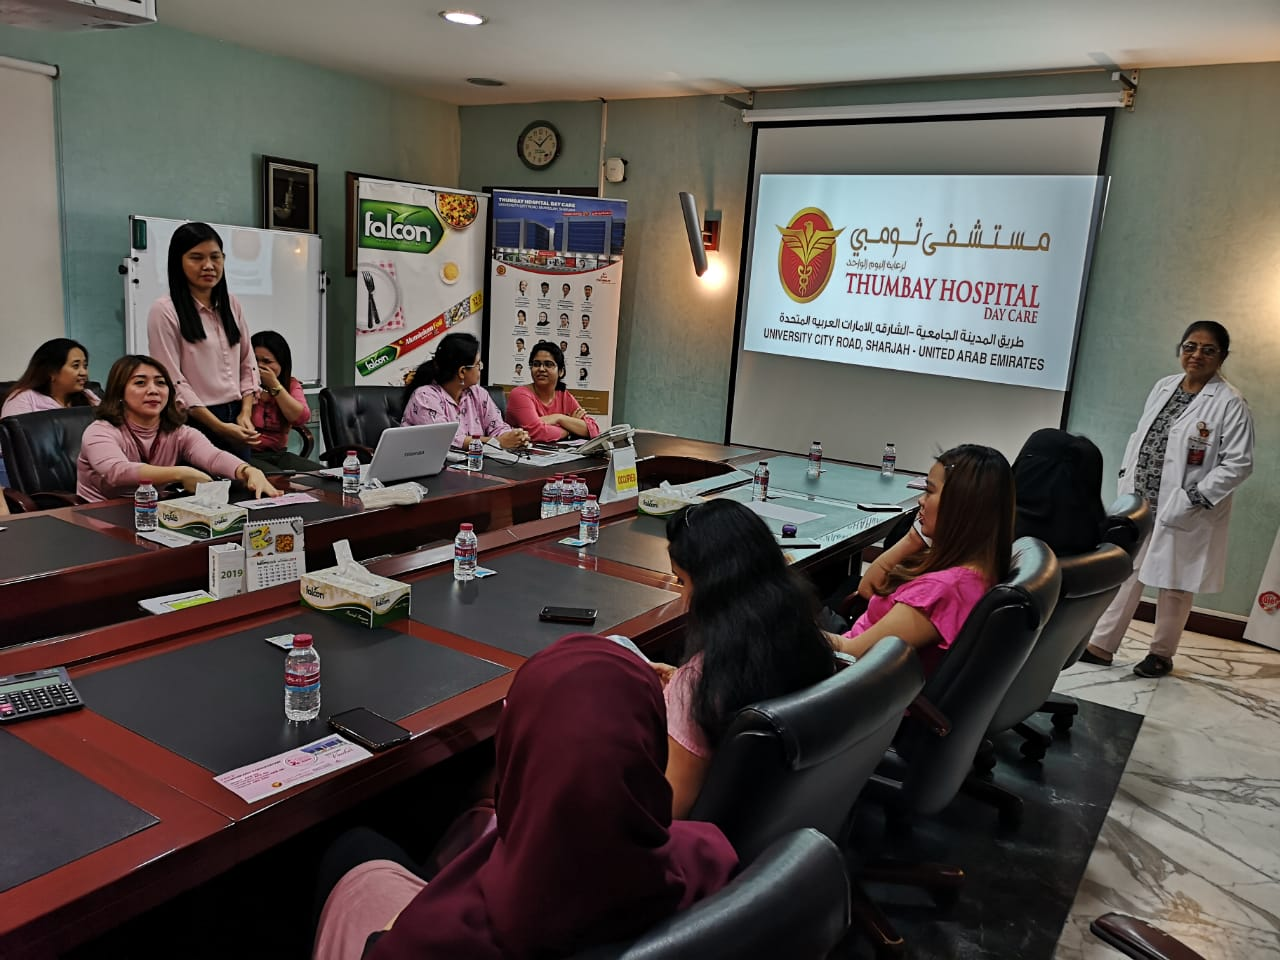 Thumbay Hospital Day Care, University City Road Muwailah-Sharjah Organized Breast Cancer Awareness Event in Falcon Pack Sharjah